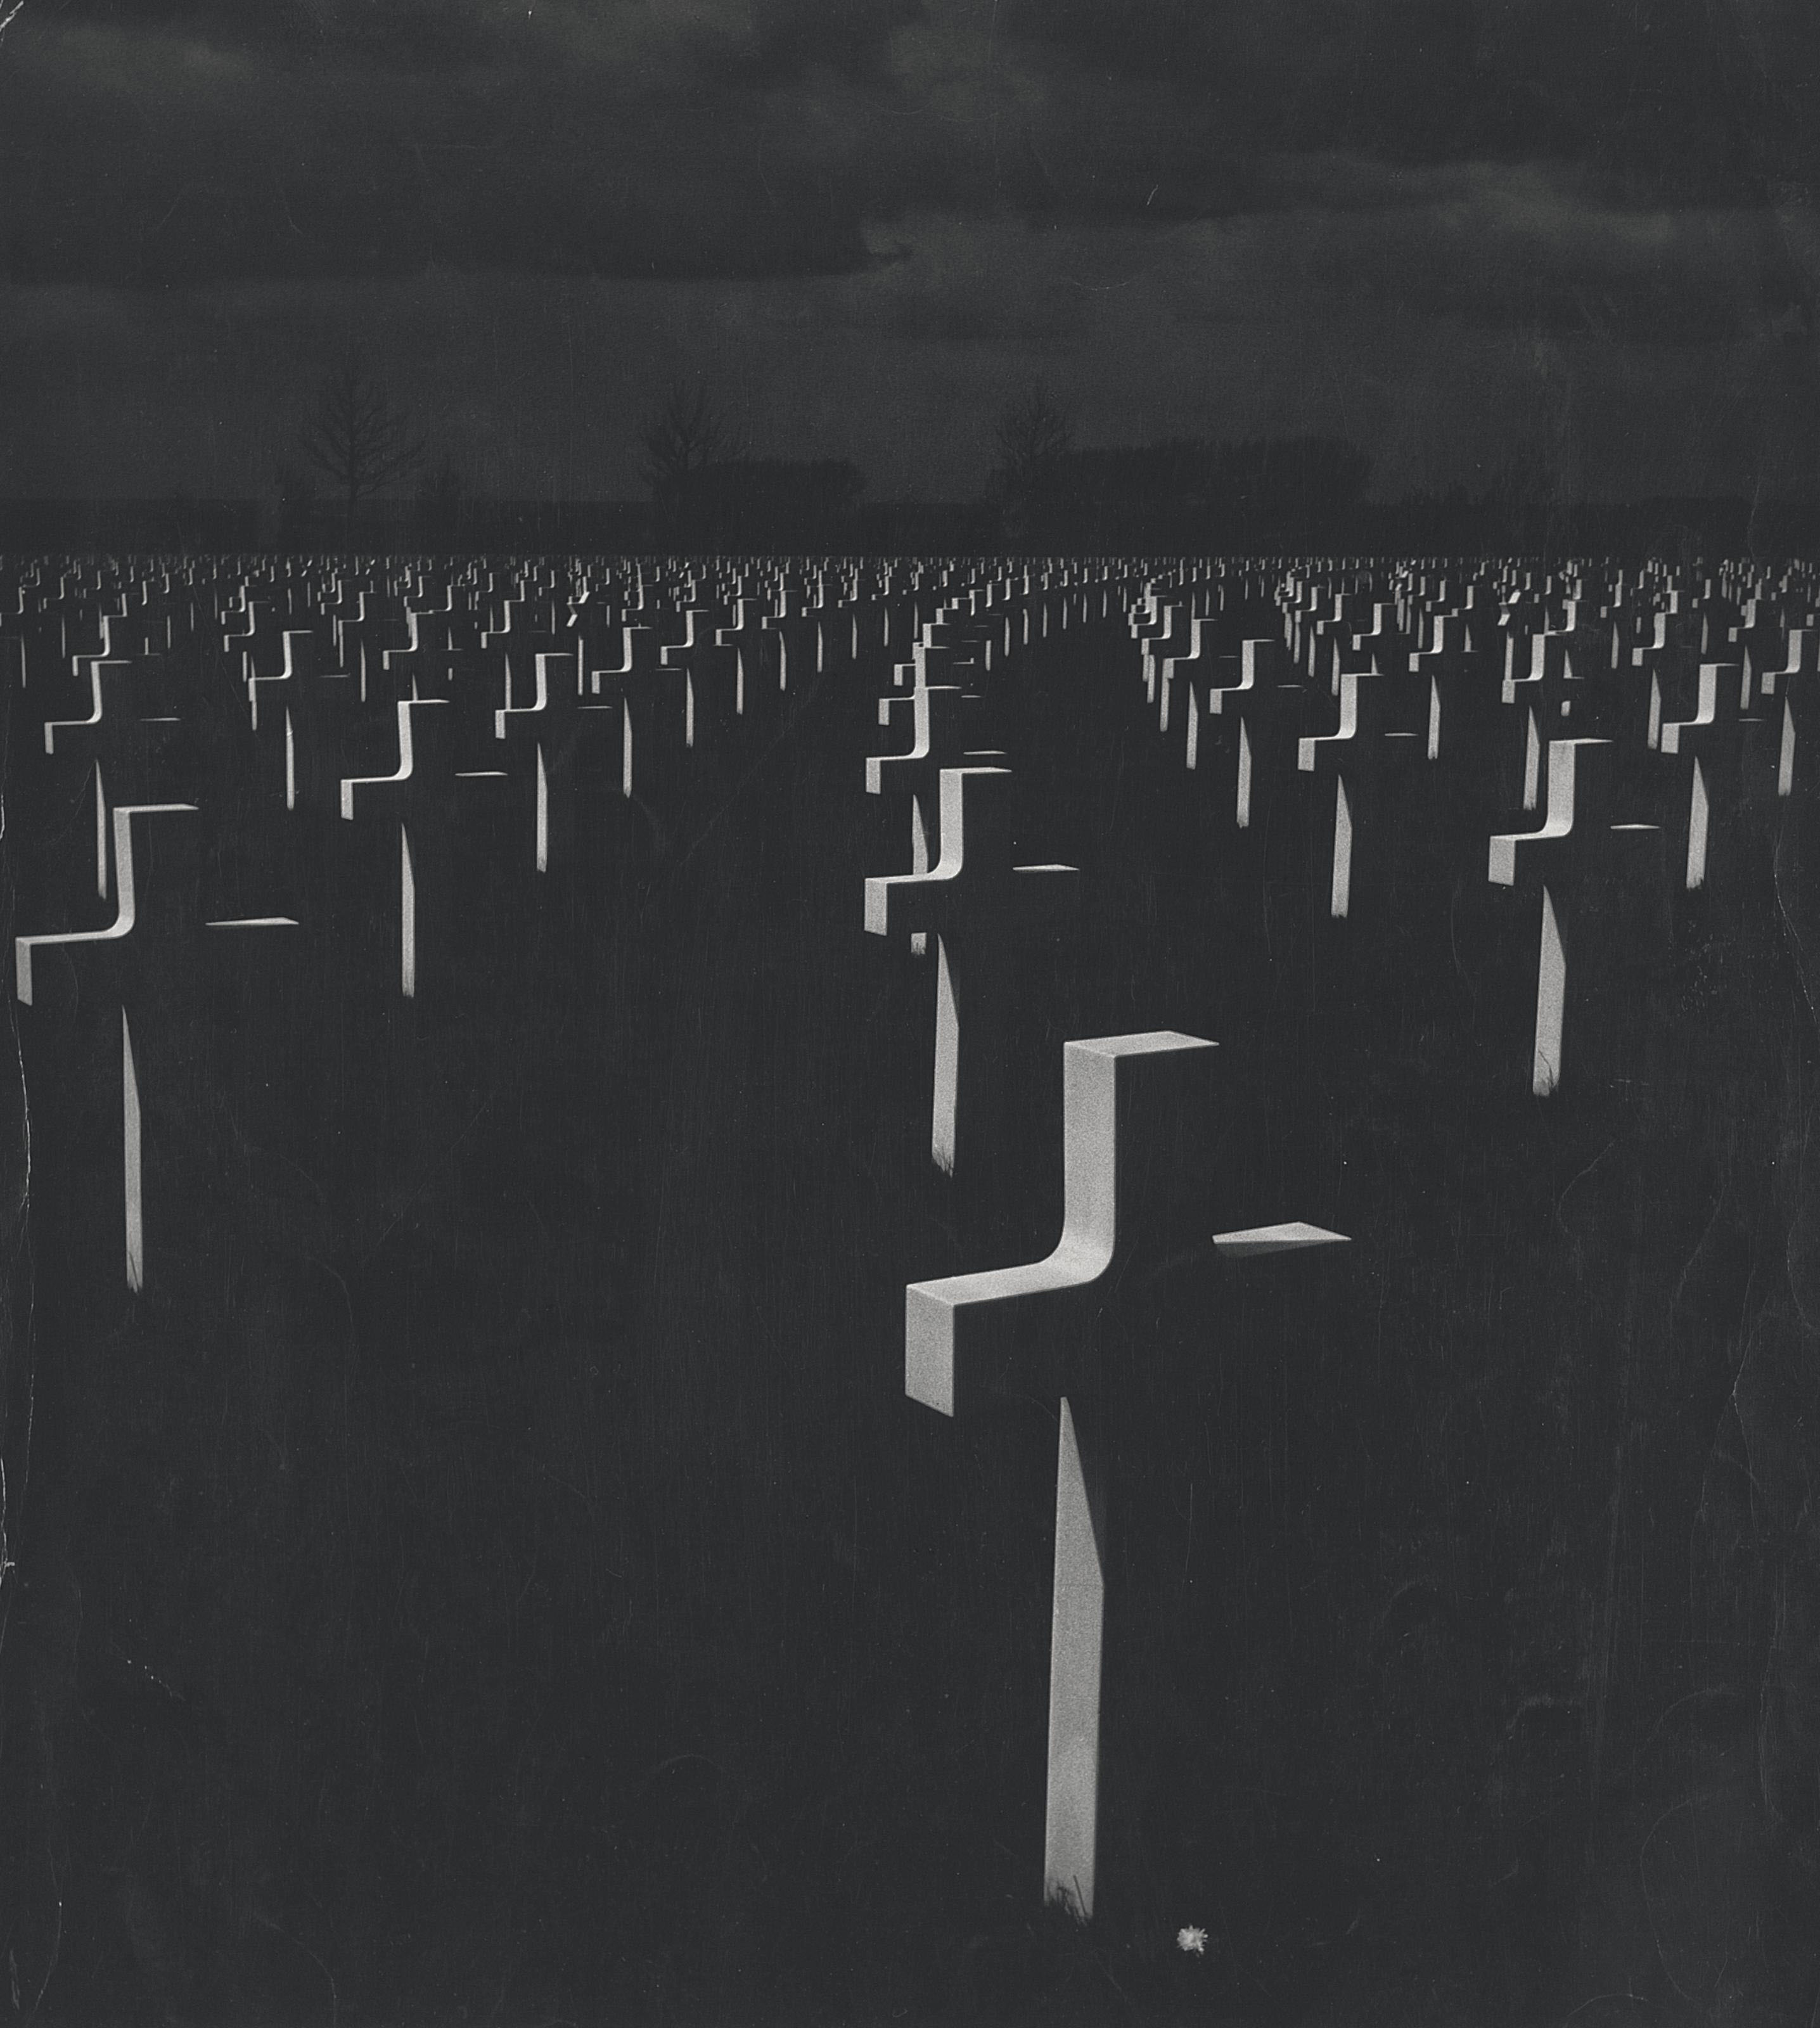 Cemetery at night. c. 1960